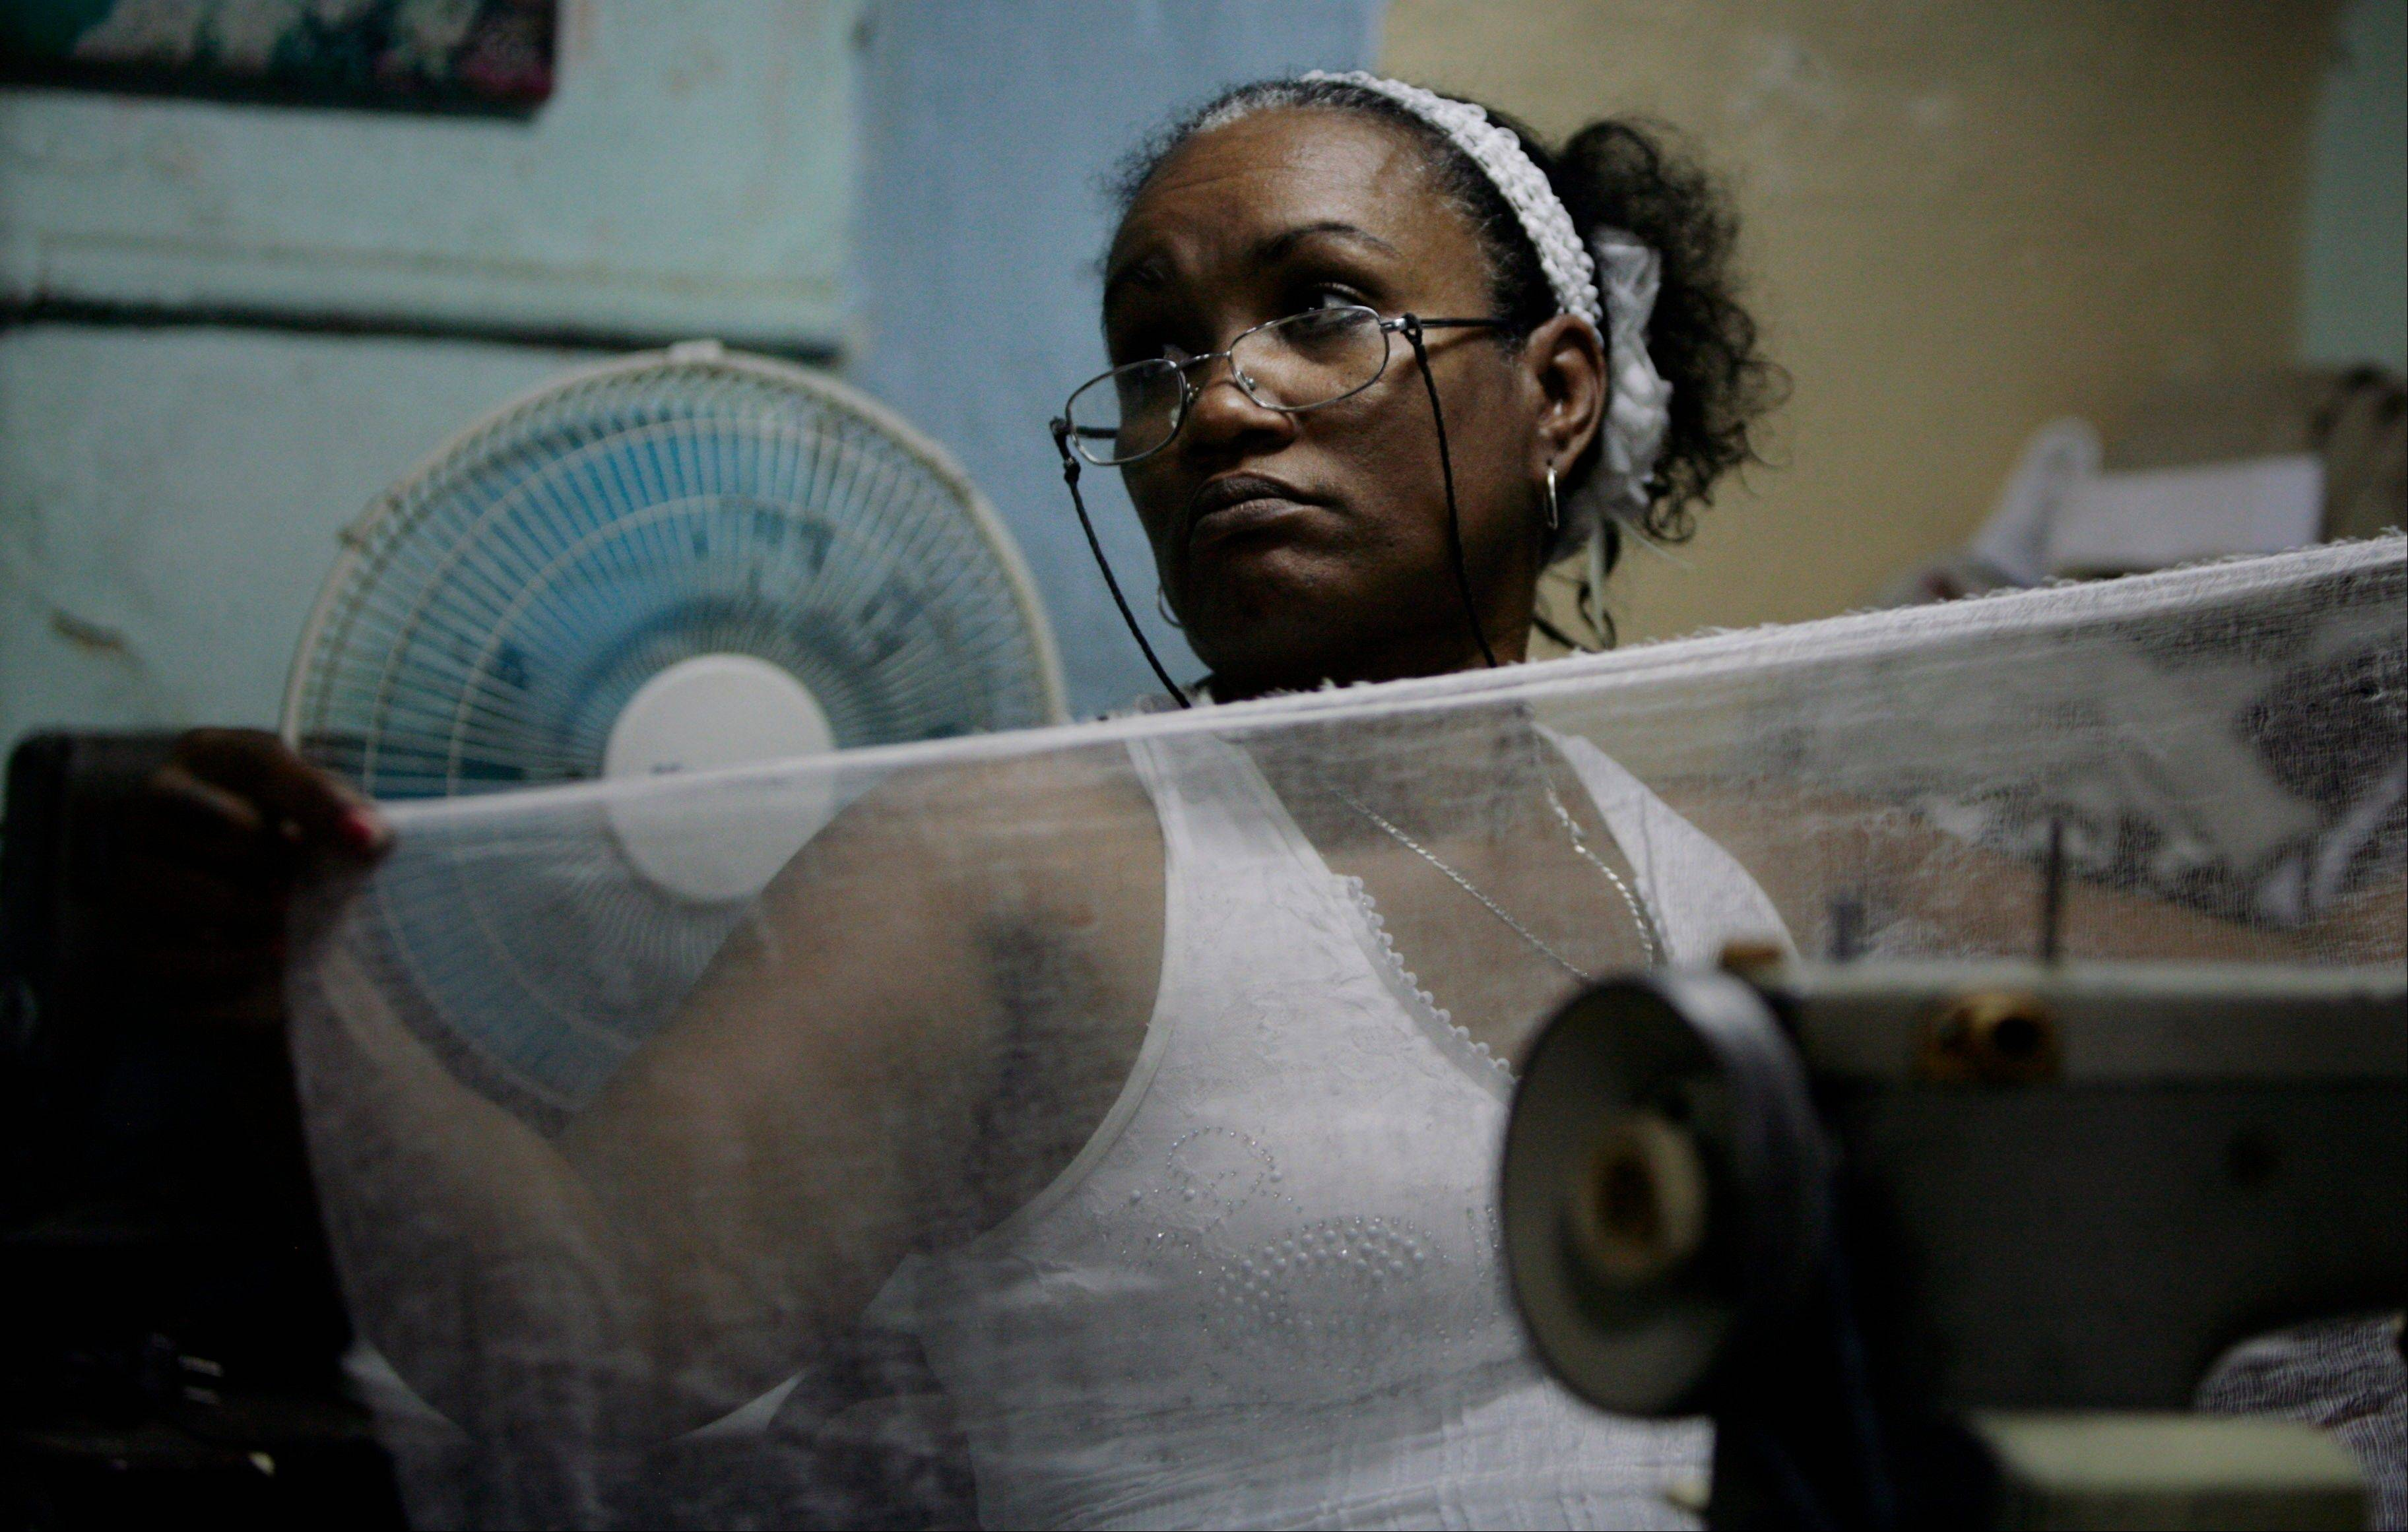 Seamstress Anisia Cardenas works on her sewing machine in Havana. She had set up a stall in a neighbor's patio that she rented for $2 a day. Unable to meet costs, she says she gave up on the stall in March and now works out of her kitchen.